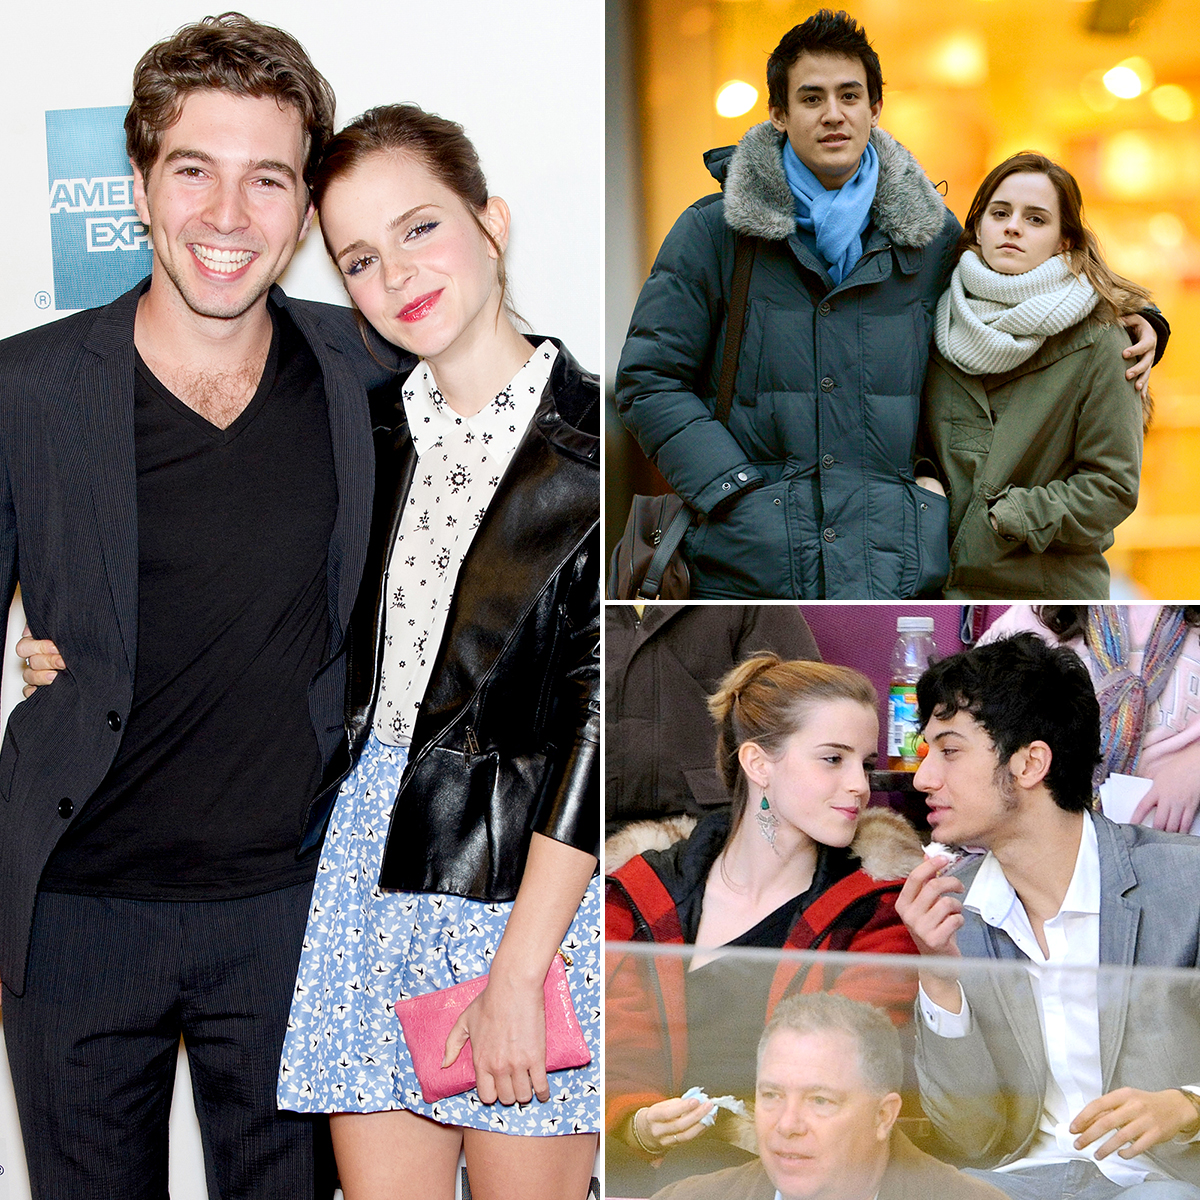 who is emma watson dating now